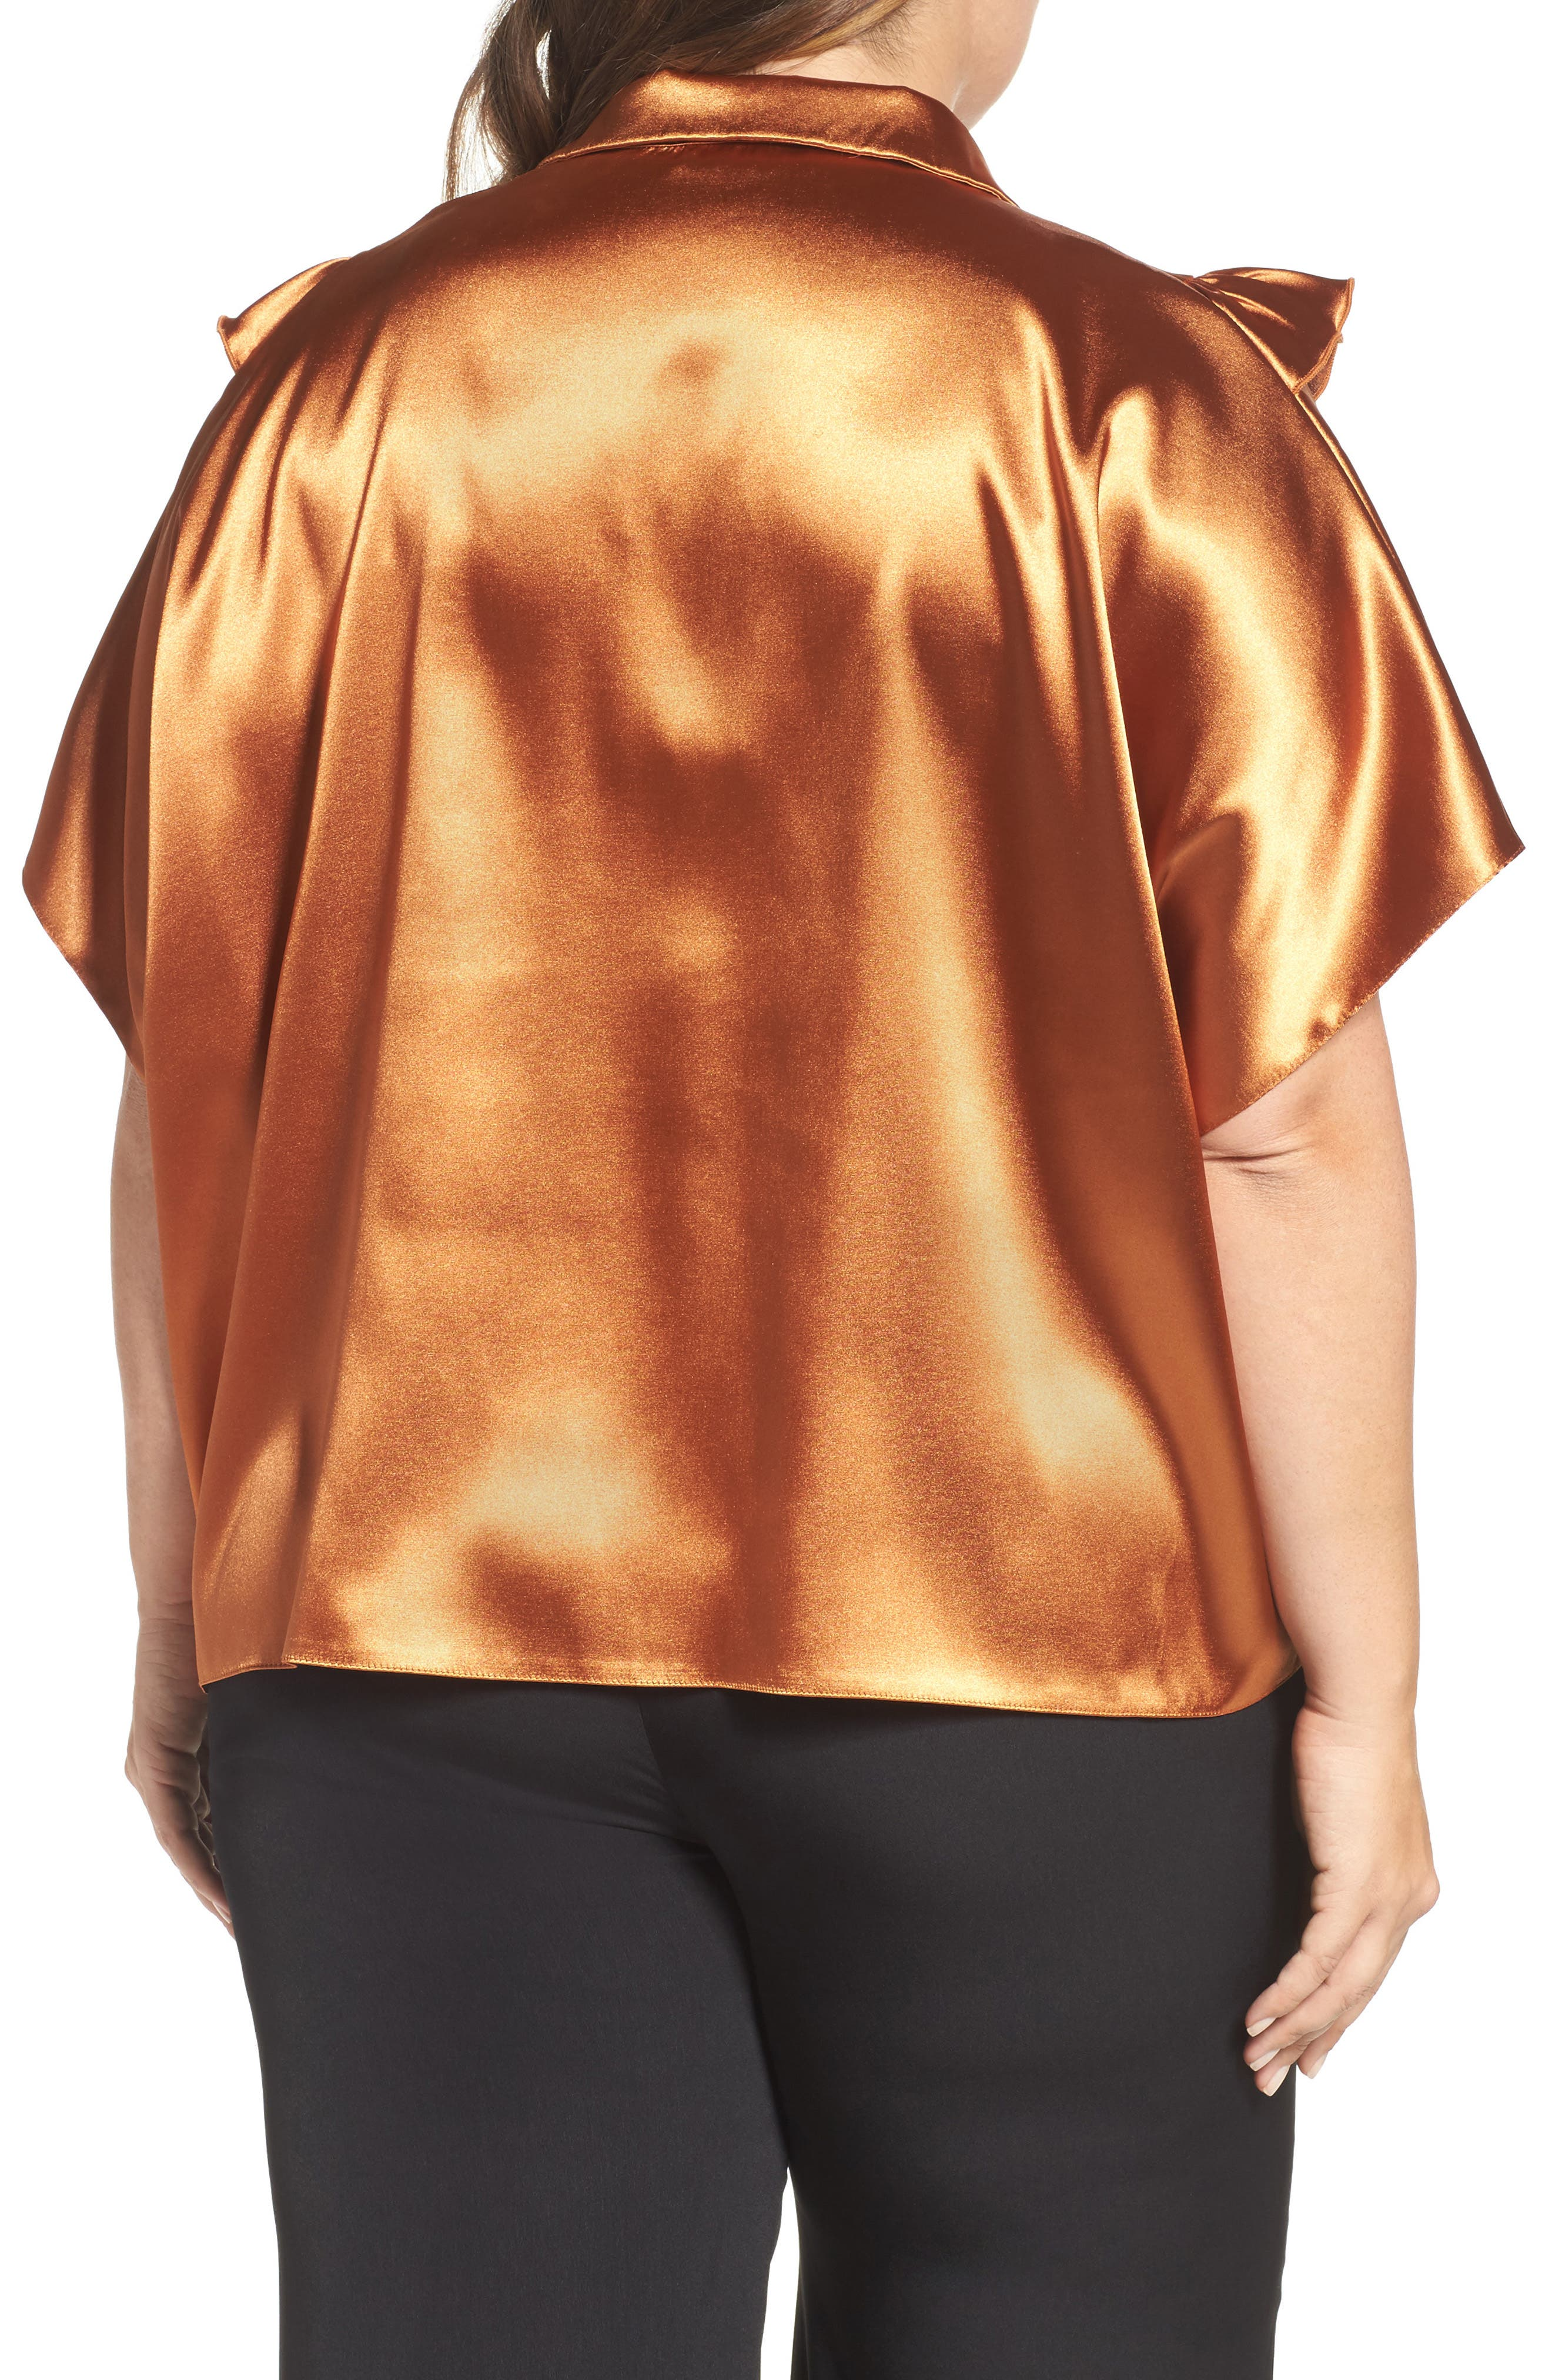 Copper Frill Shirt,                             Alternate thumbnail 2, color,